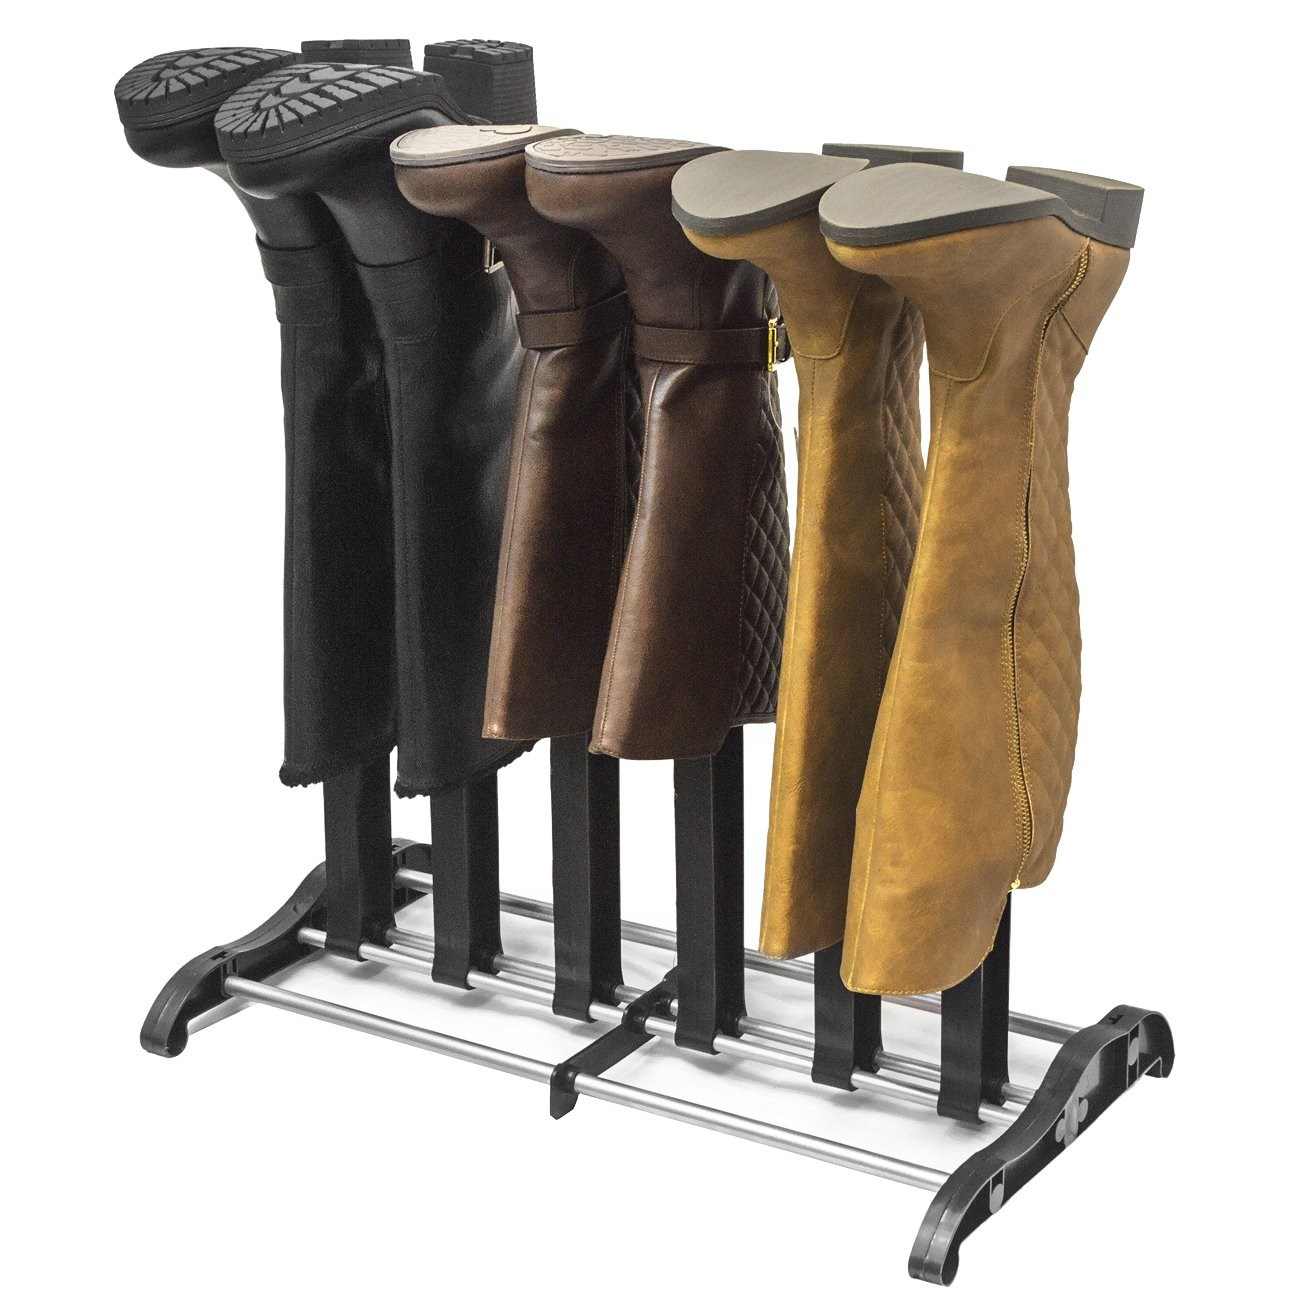 Sorbus Boot Rack Shoe Storage Organizer, Holds 3 Pairs of Boots, Easy to Assemble, No Tools Required